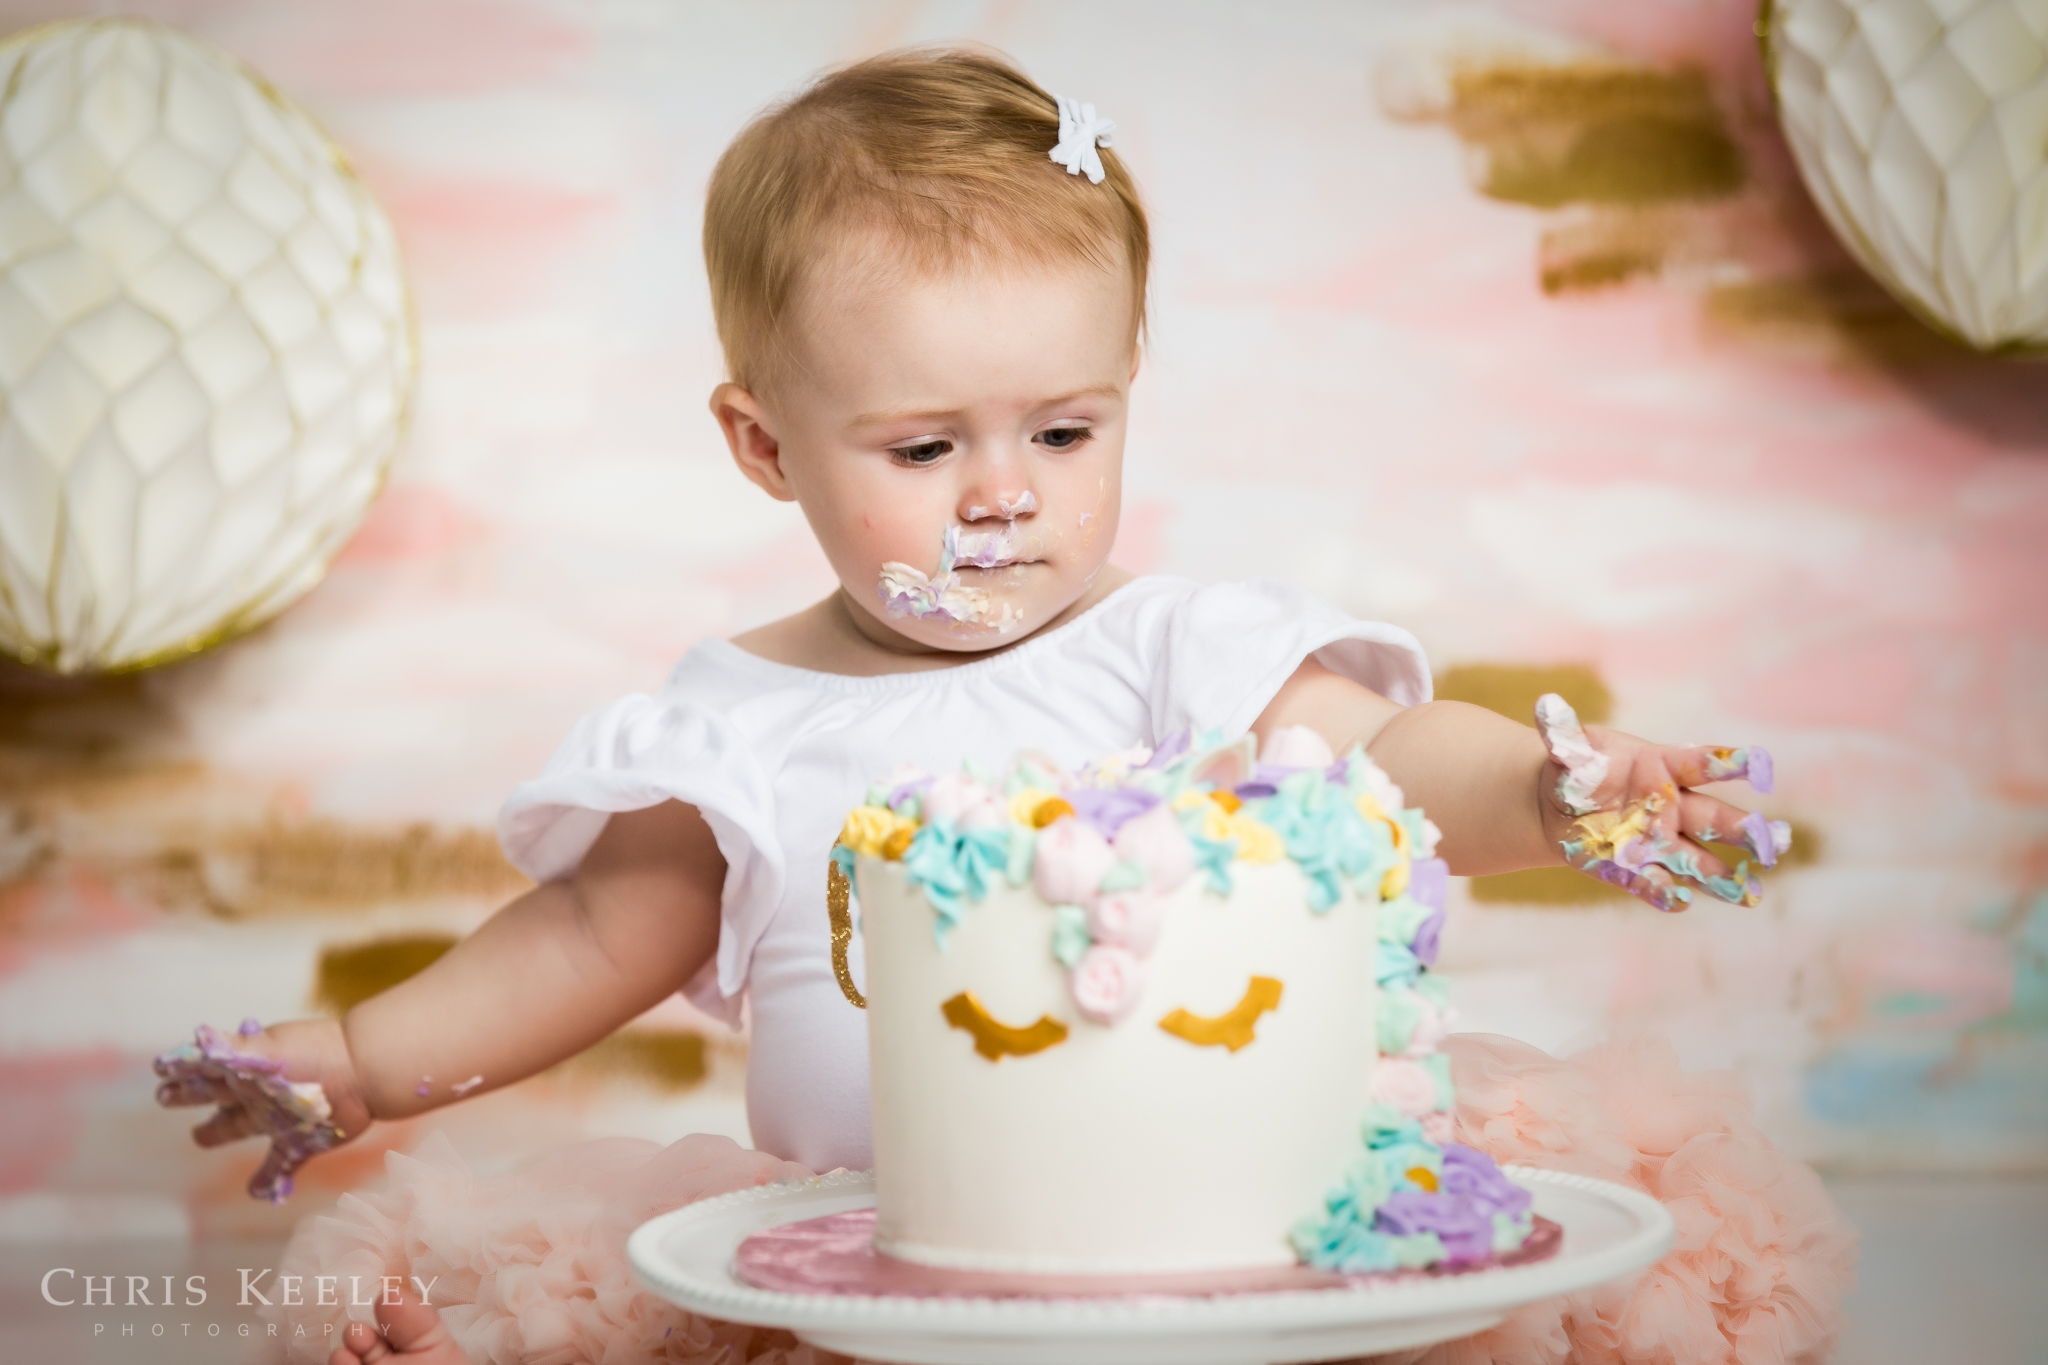 gwendolyn-one-year-cake-smash-dover-new-hampshire-photographer-05.jpg